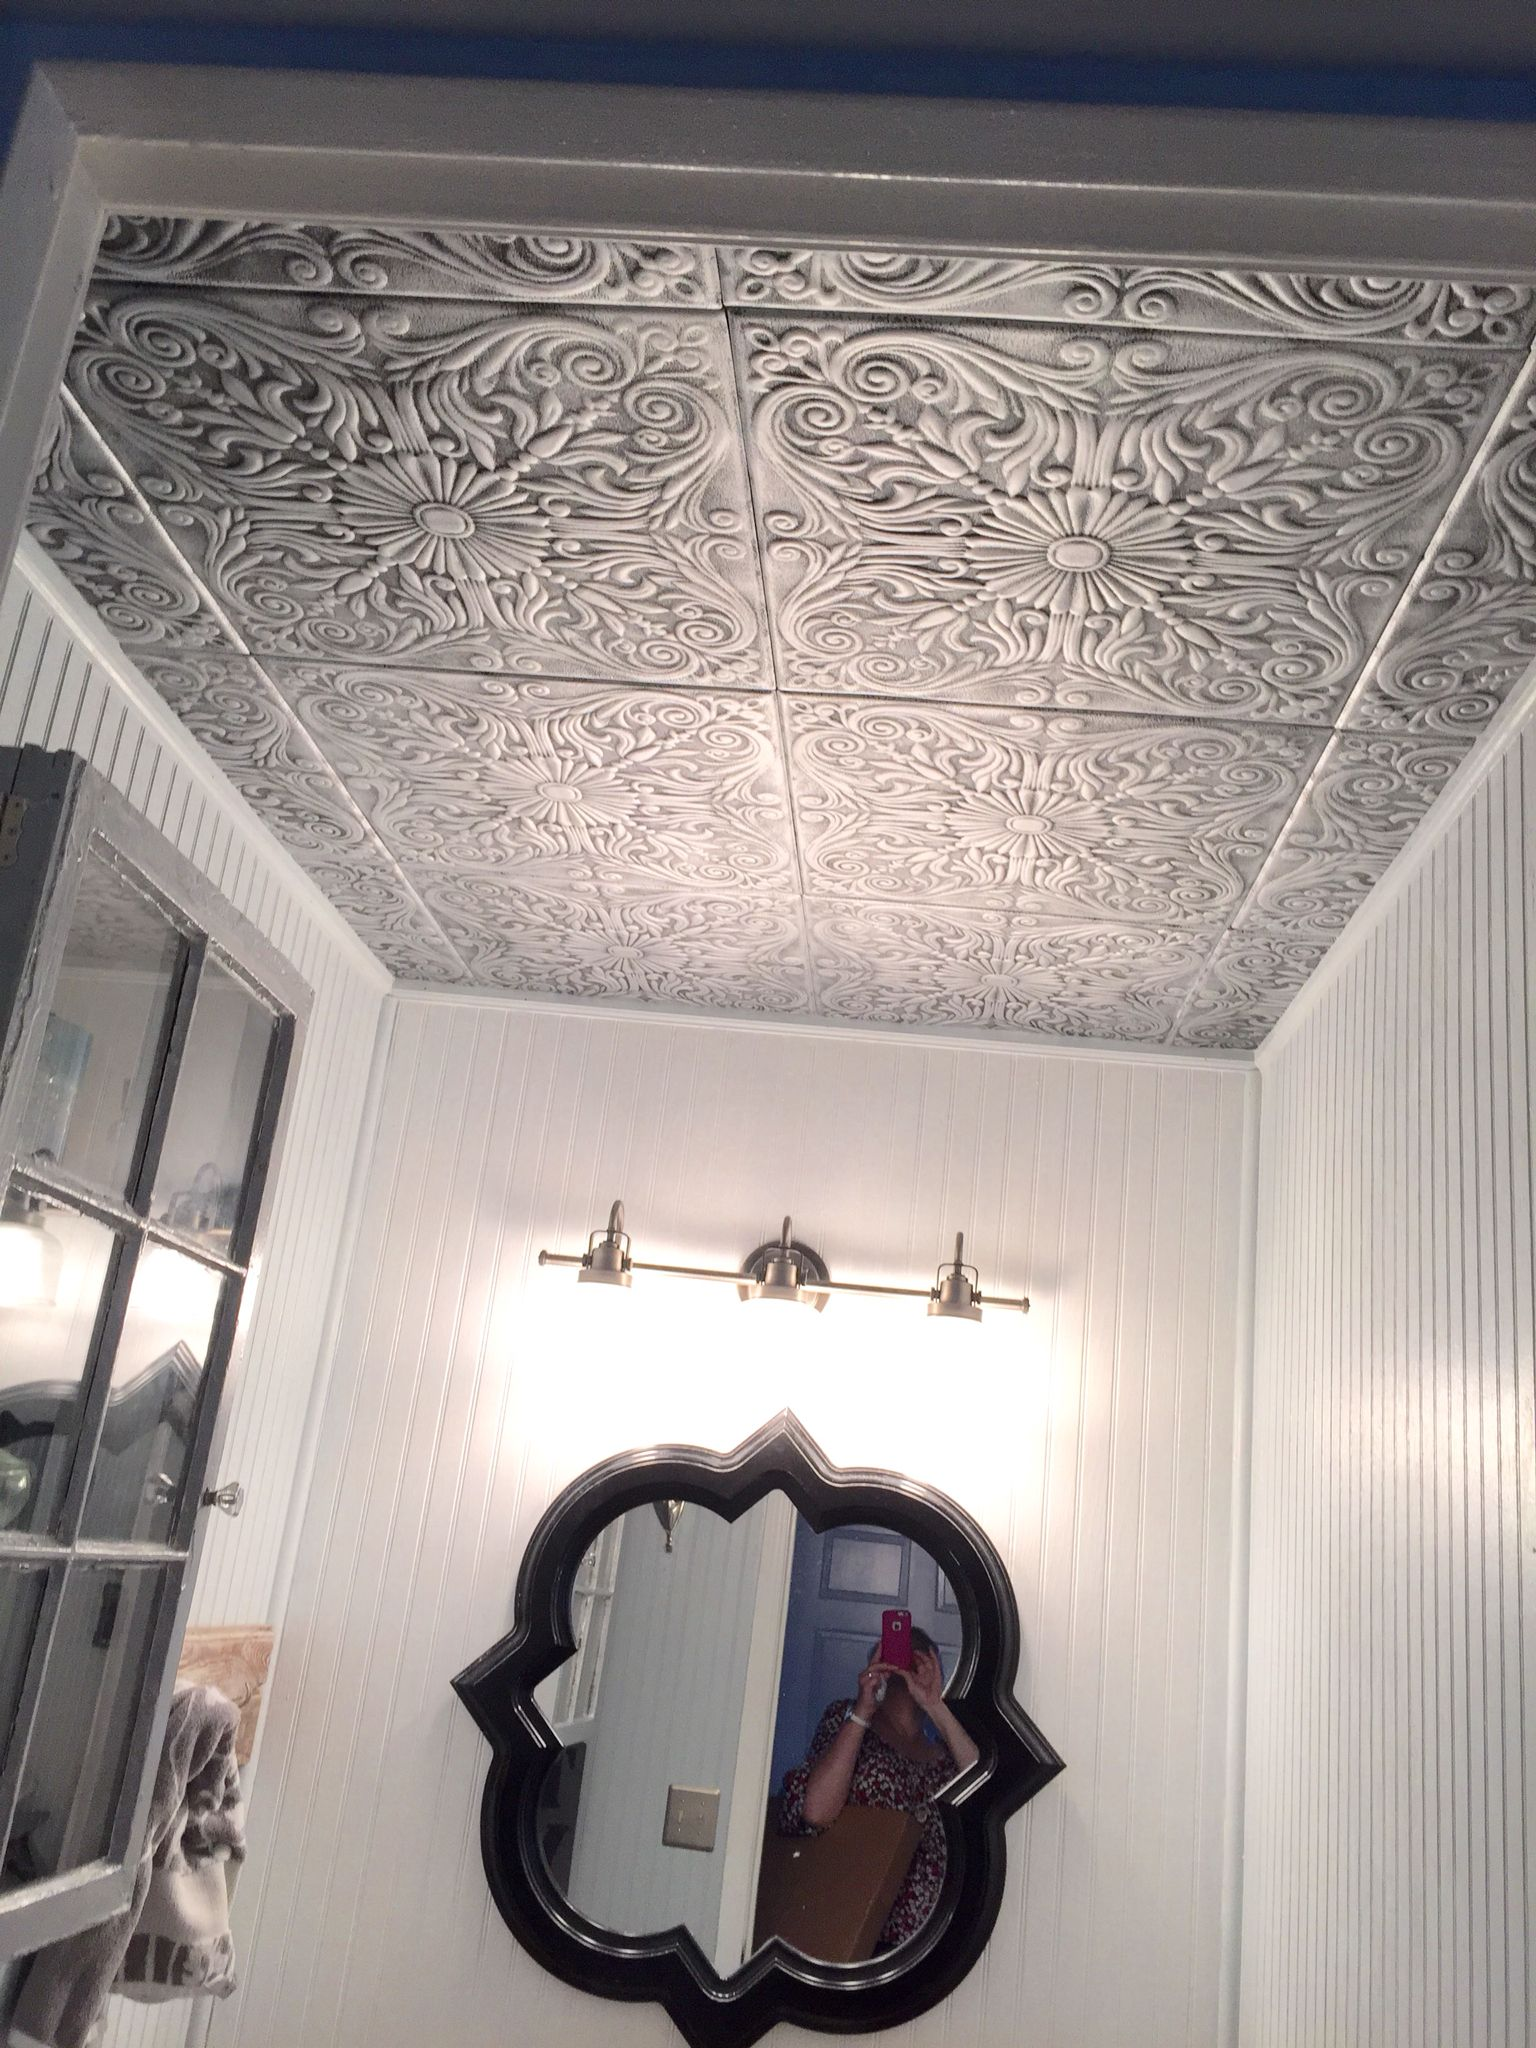 Powder room bath remedy for popcorn ceiling this was quick and powder room bath remedy for popcorn ceiling i removed the popcorn first what a messy project but these ceiling tiles can go right over if you don t dailygadgetfo Choice Image